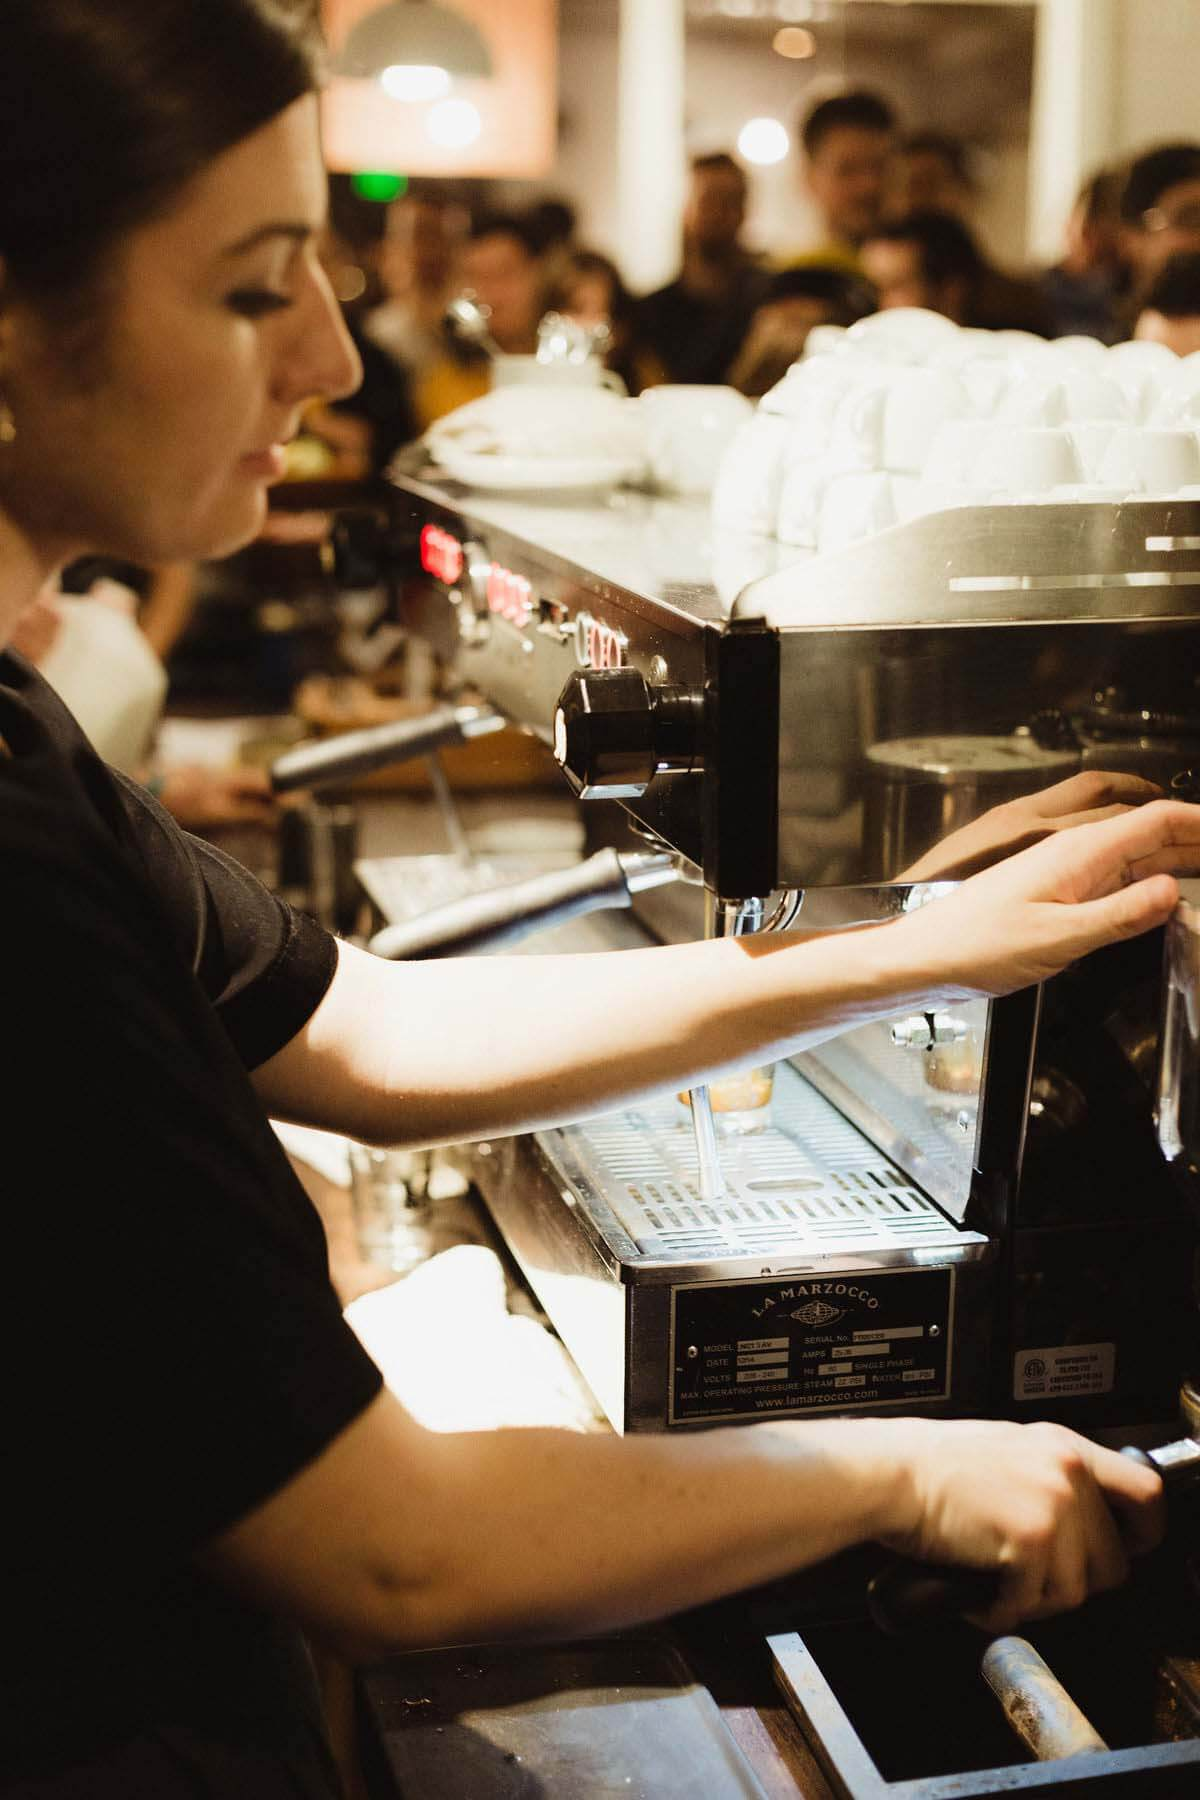 Offering barista secrets as she goes, Victoria Quirk makes coffee at Crema